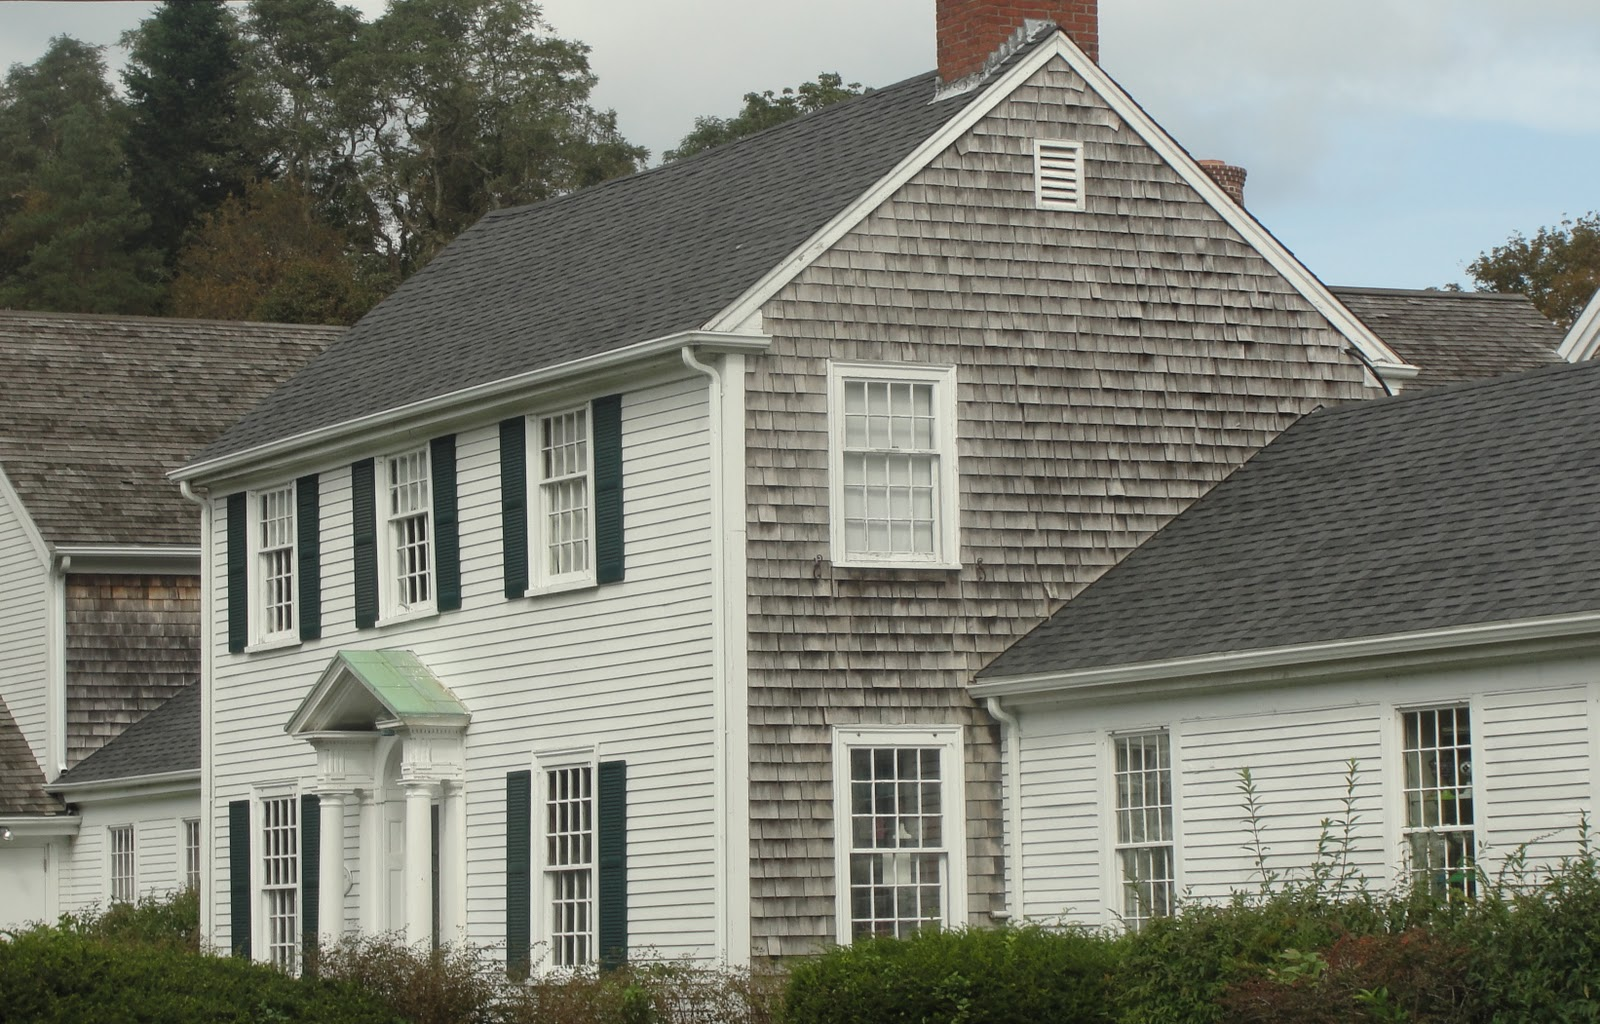 Blog: So You're Cape Cod House